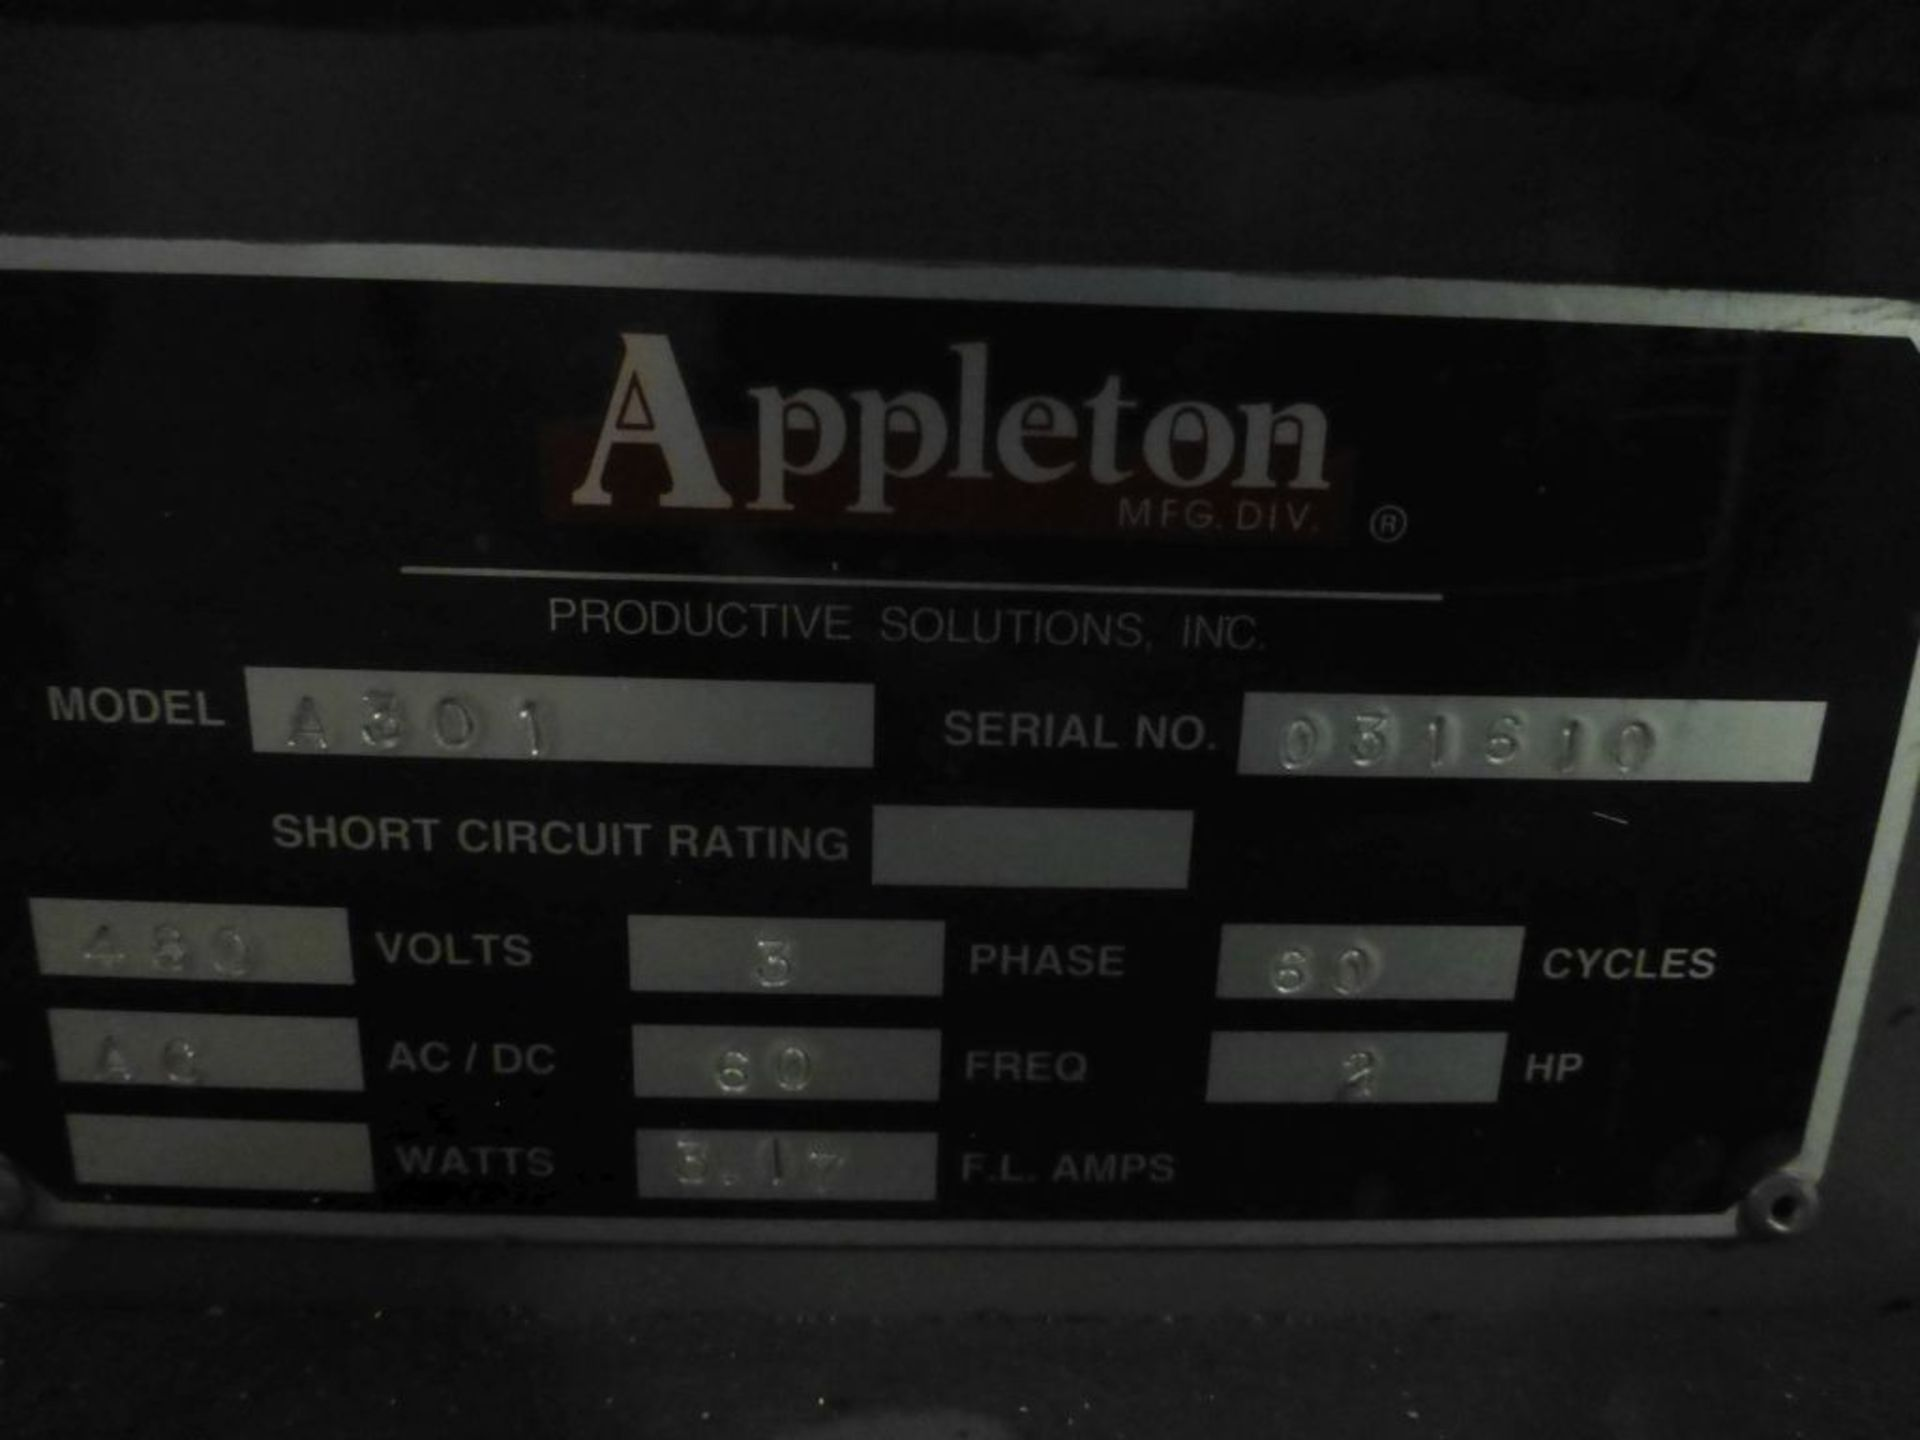 Appleton Automatic Core Cutter | Model No. A301; 2 HP; 460V; 3PH; Mfg: 2010 - Image 19 of 19